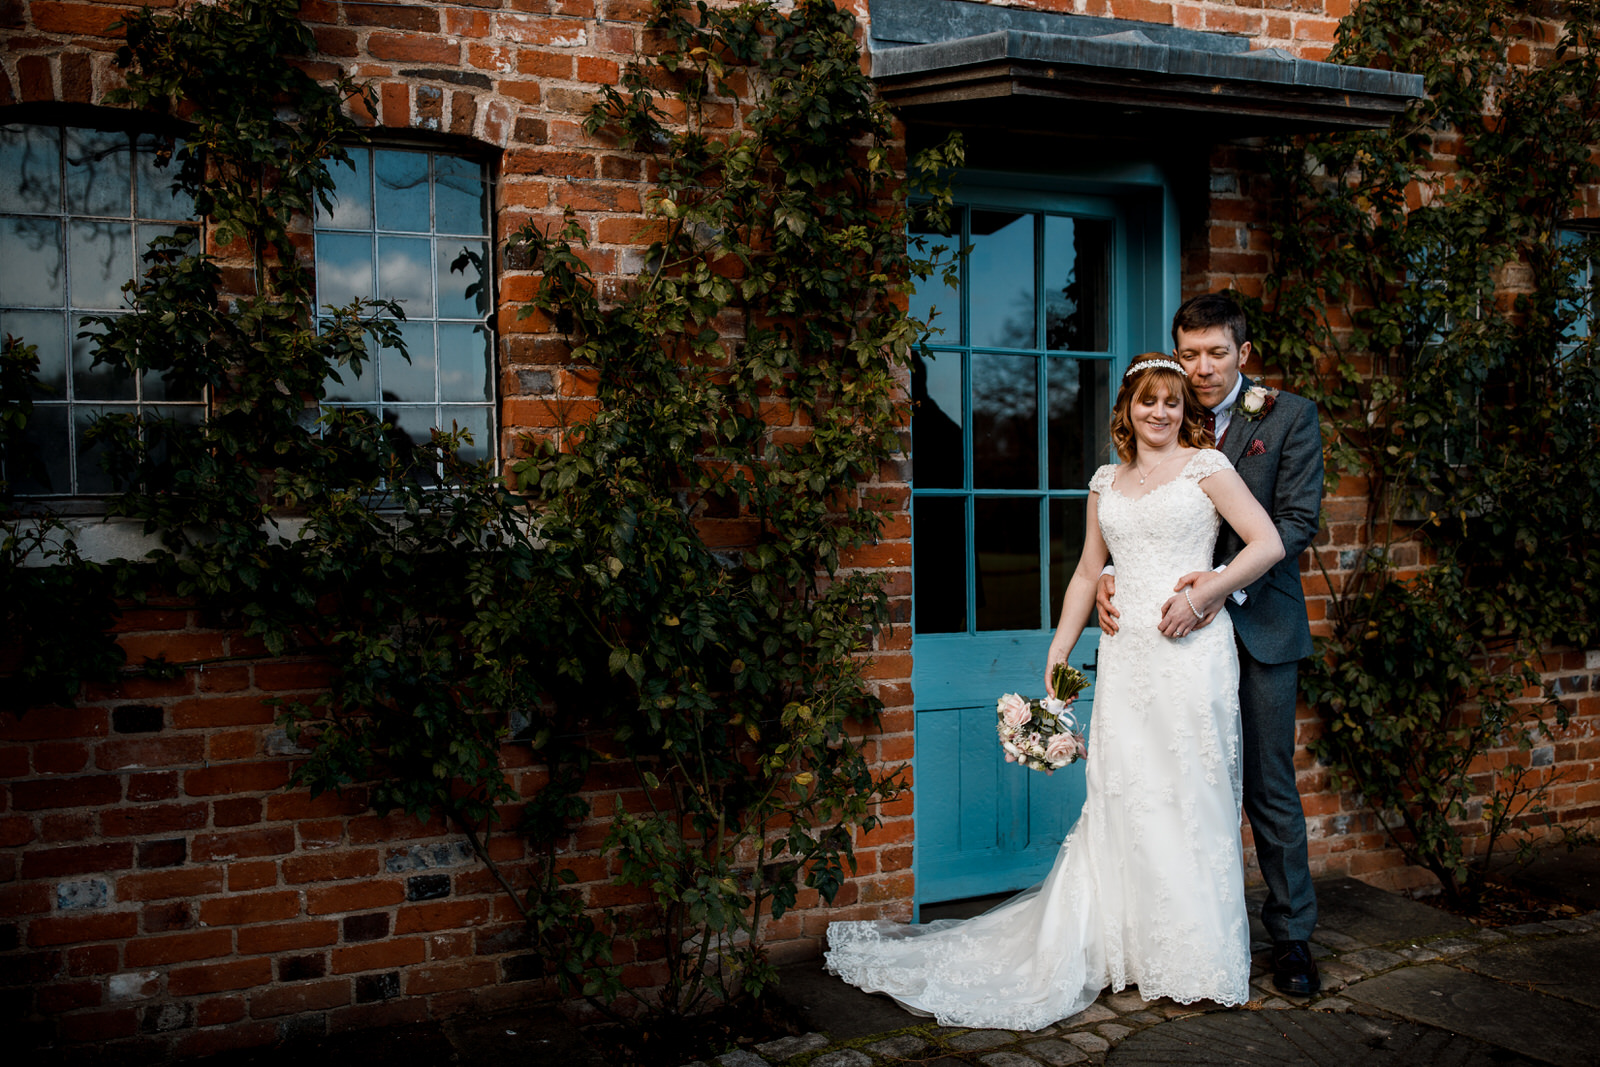 newlywed photography at micklefield hall wedding